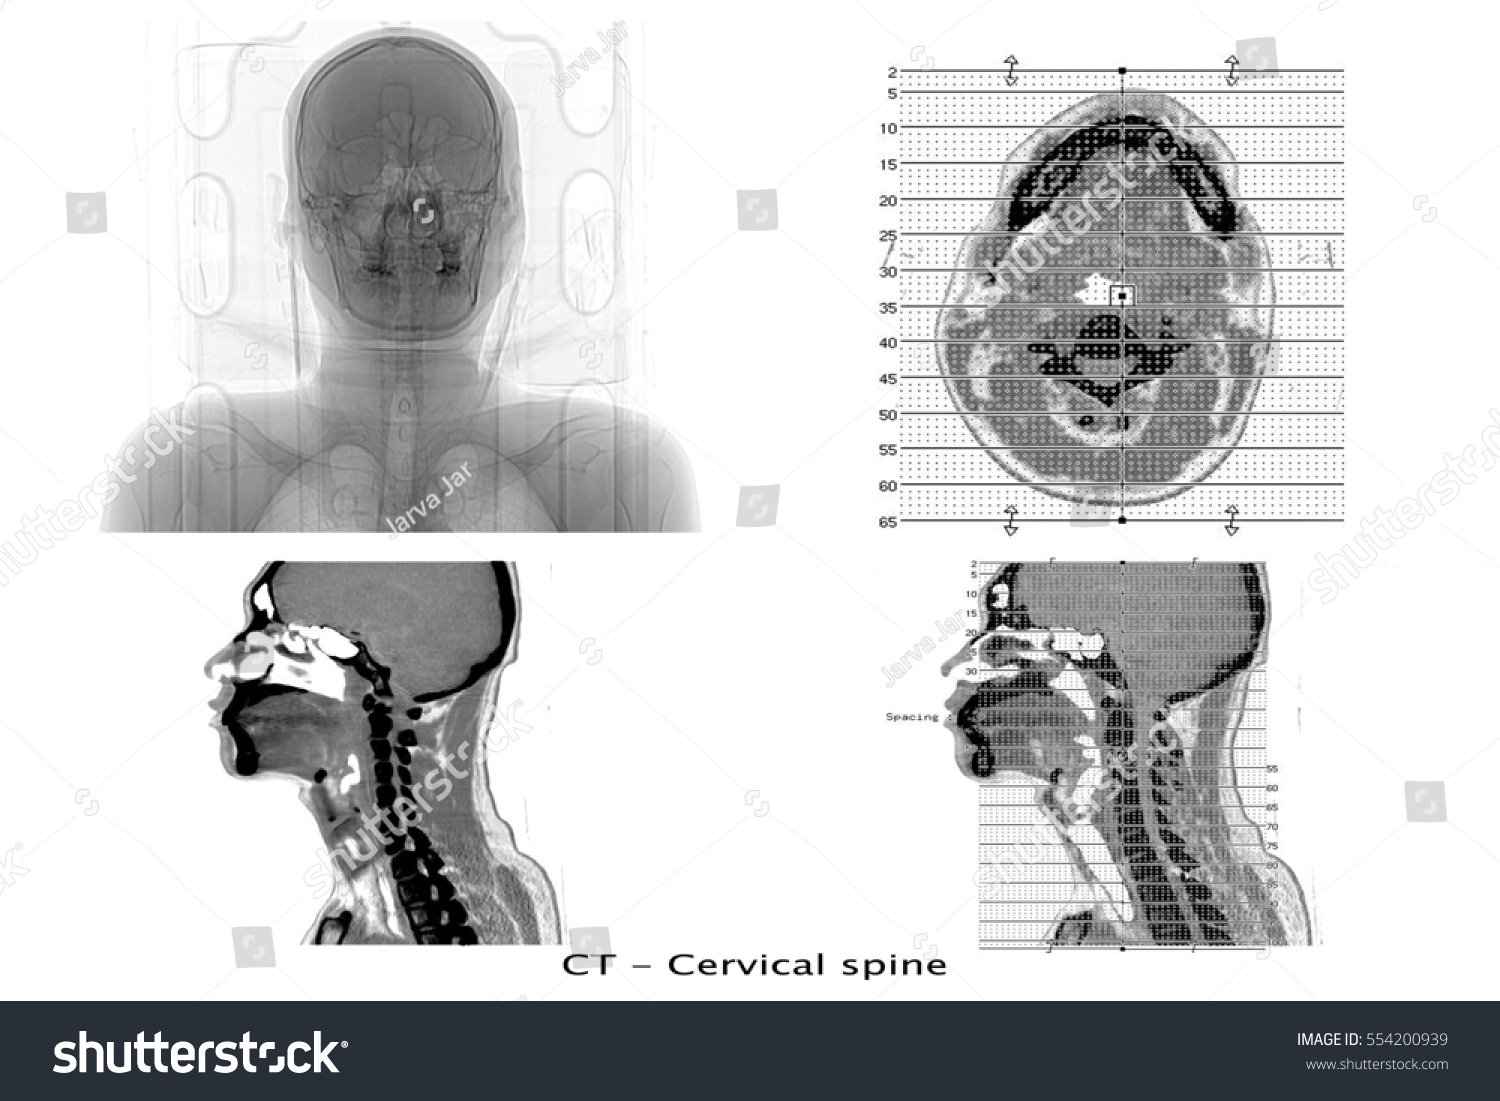 CT Scan Image Show Cervical Spine Stock Photo (Download Now ...